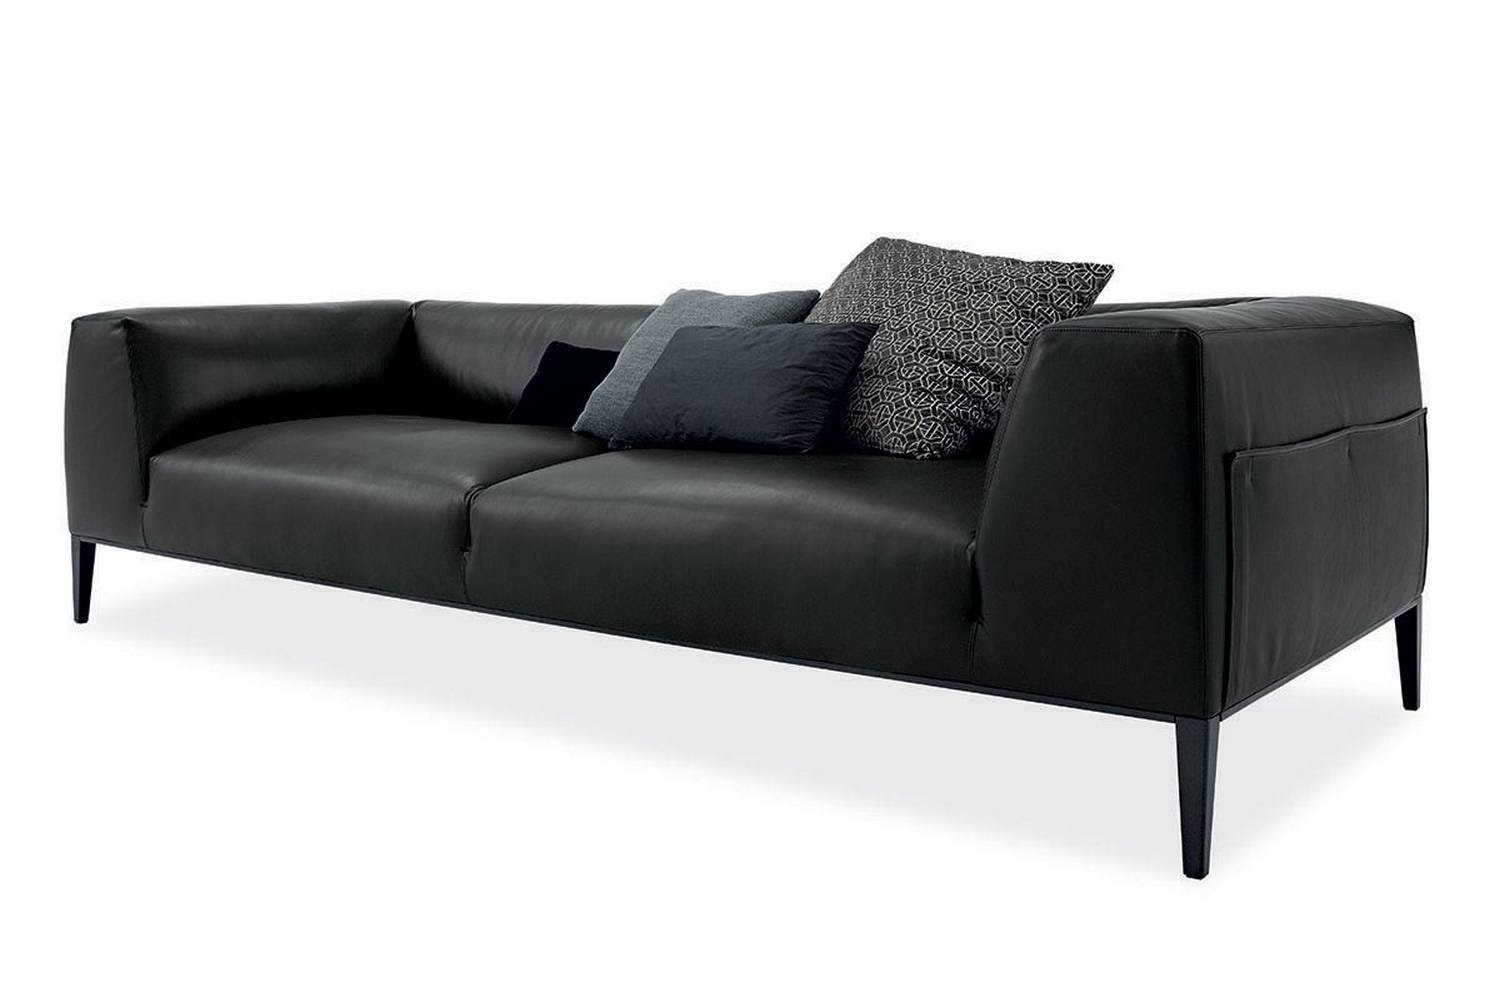 Metropolitan Sofa by J. M. Massaud for Poliform